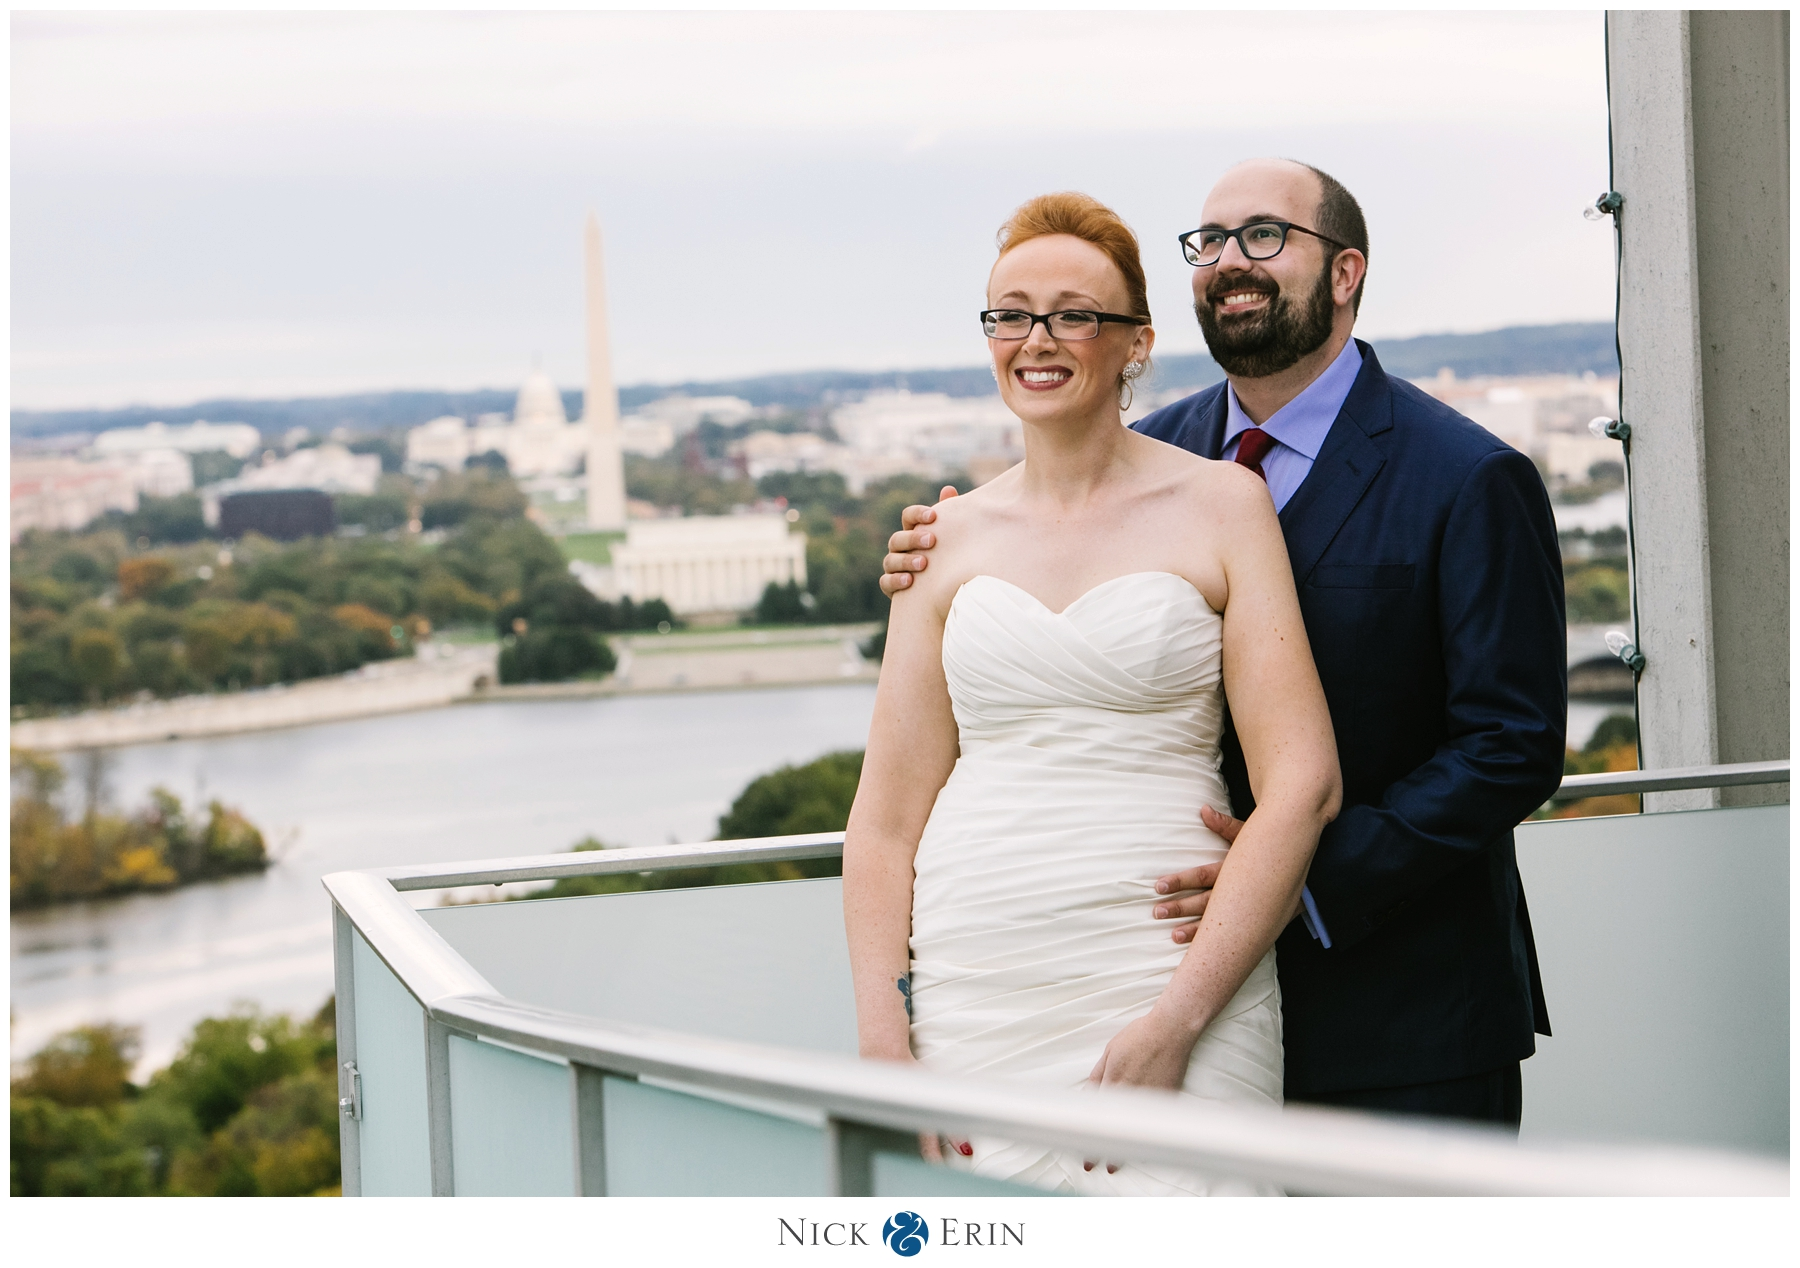 donner_photography_washington-dc-wedding_alanna-josh_0030